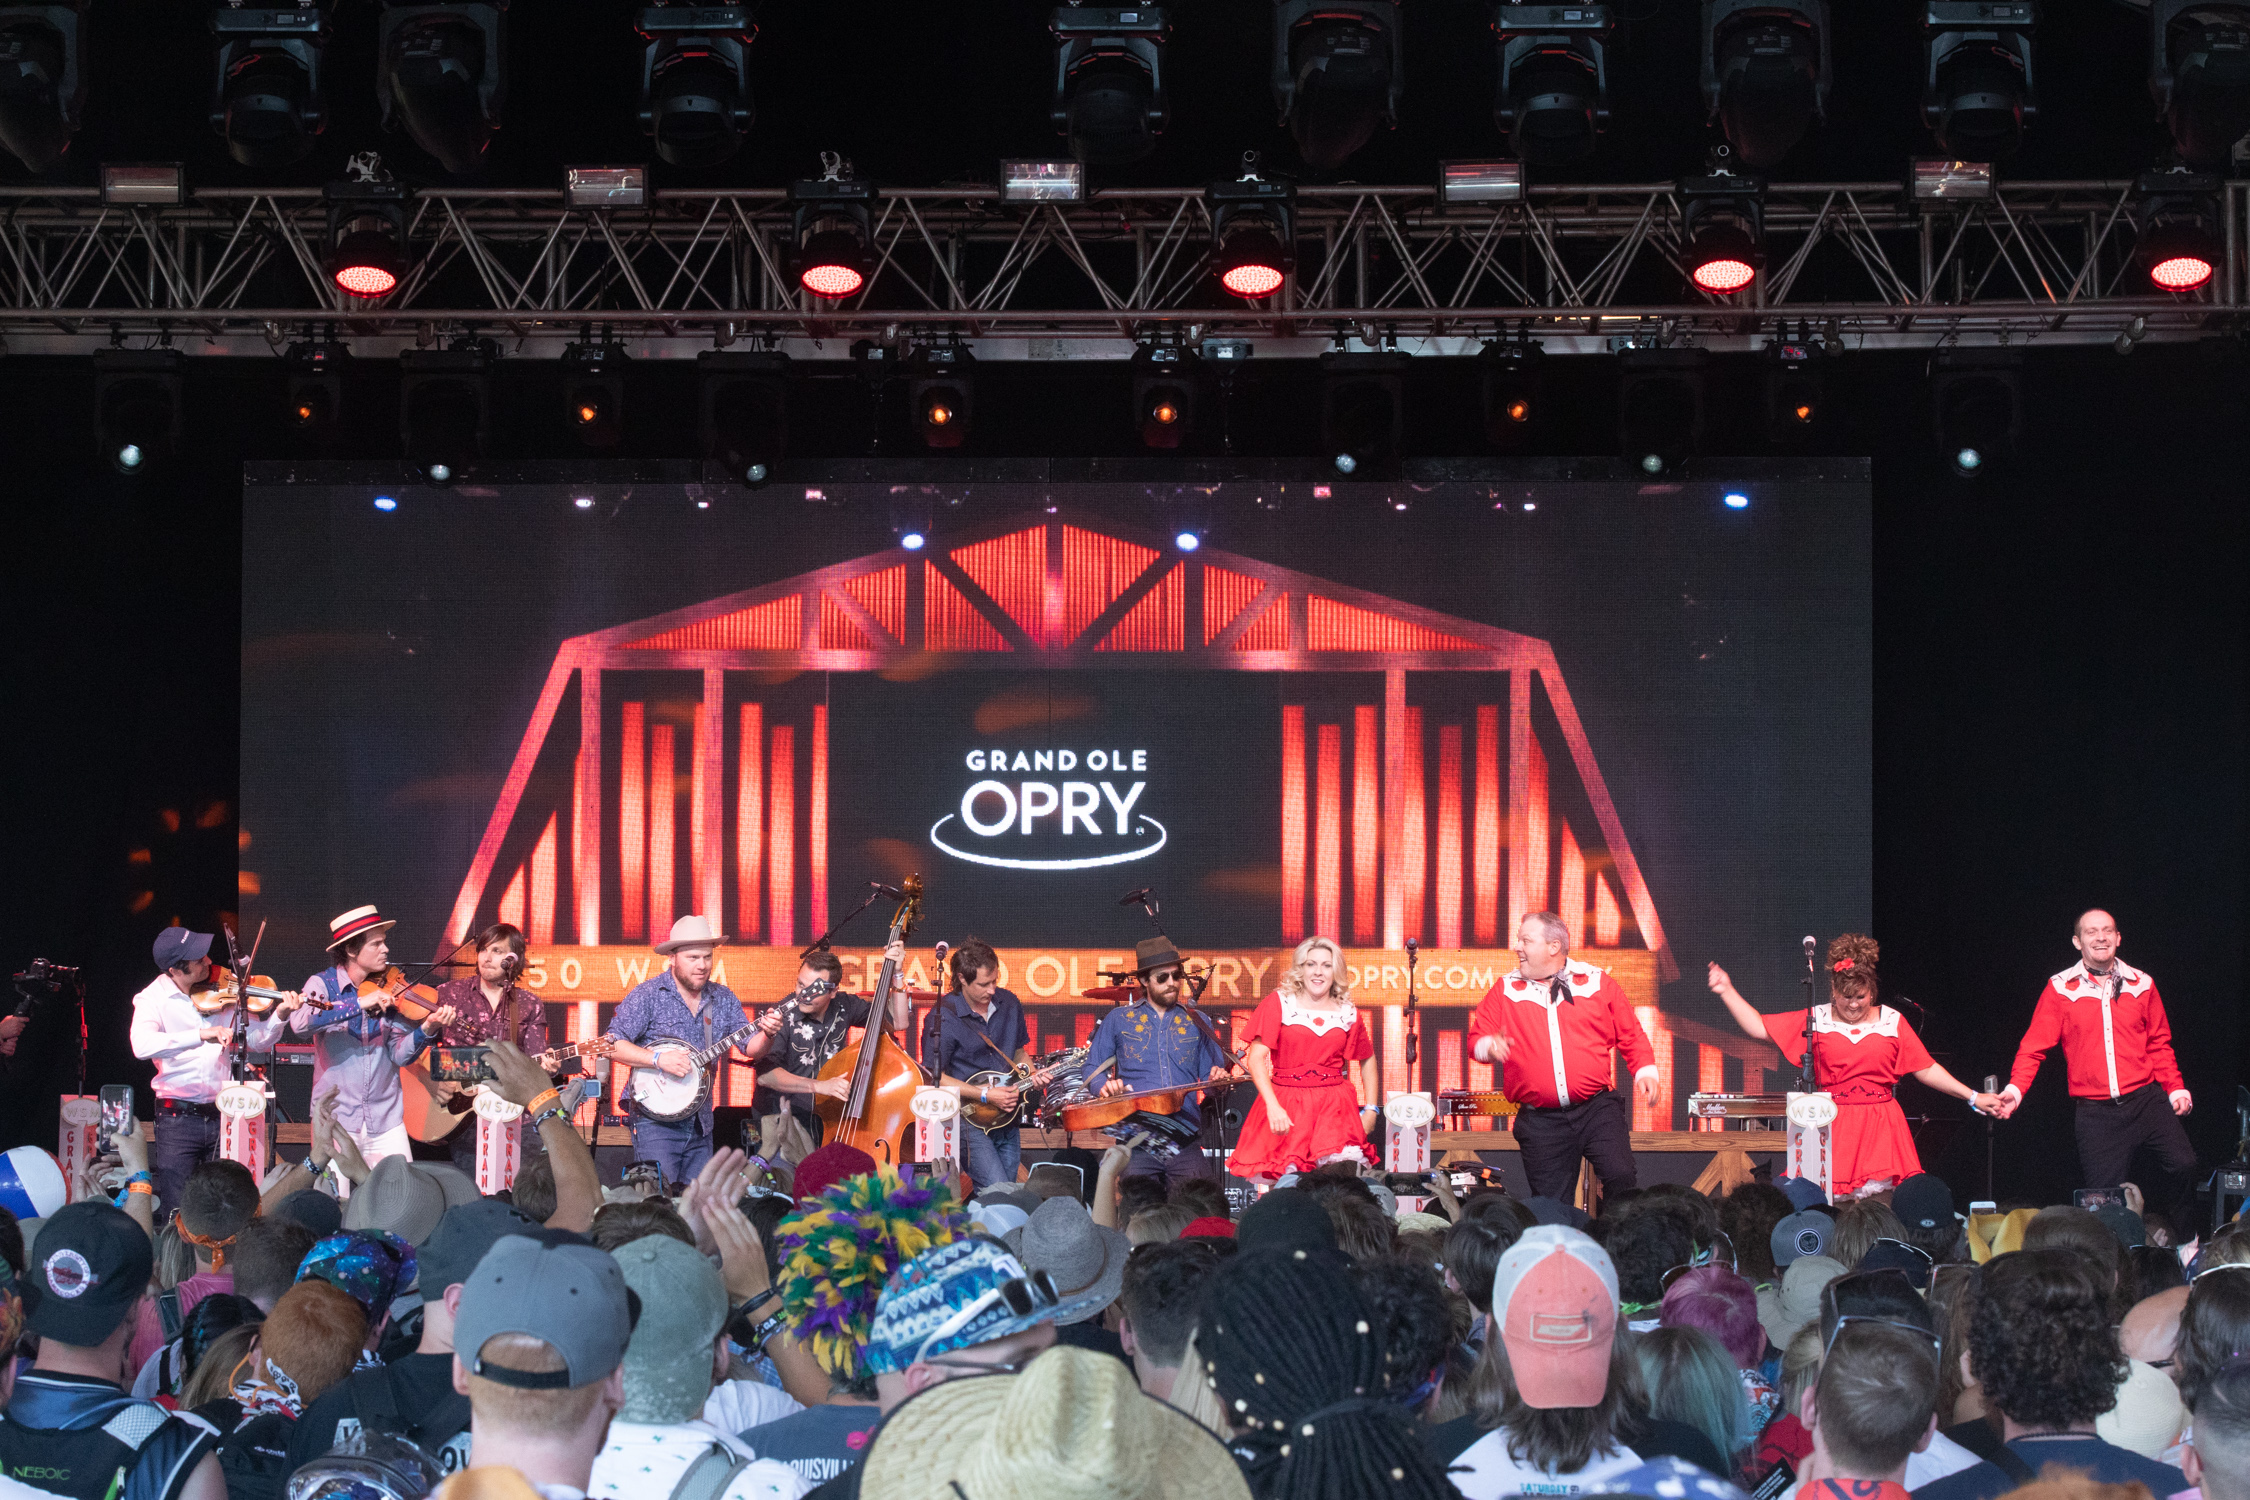 Grand Ole Opry at Bonnaroo 2019 in Photographs